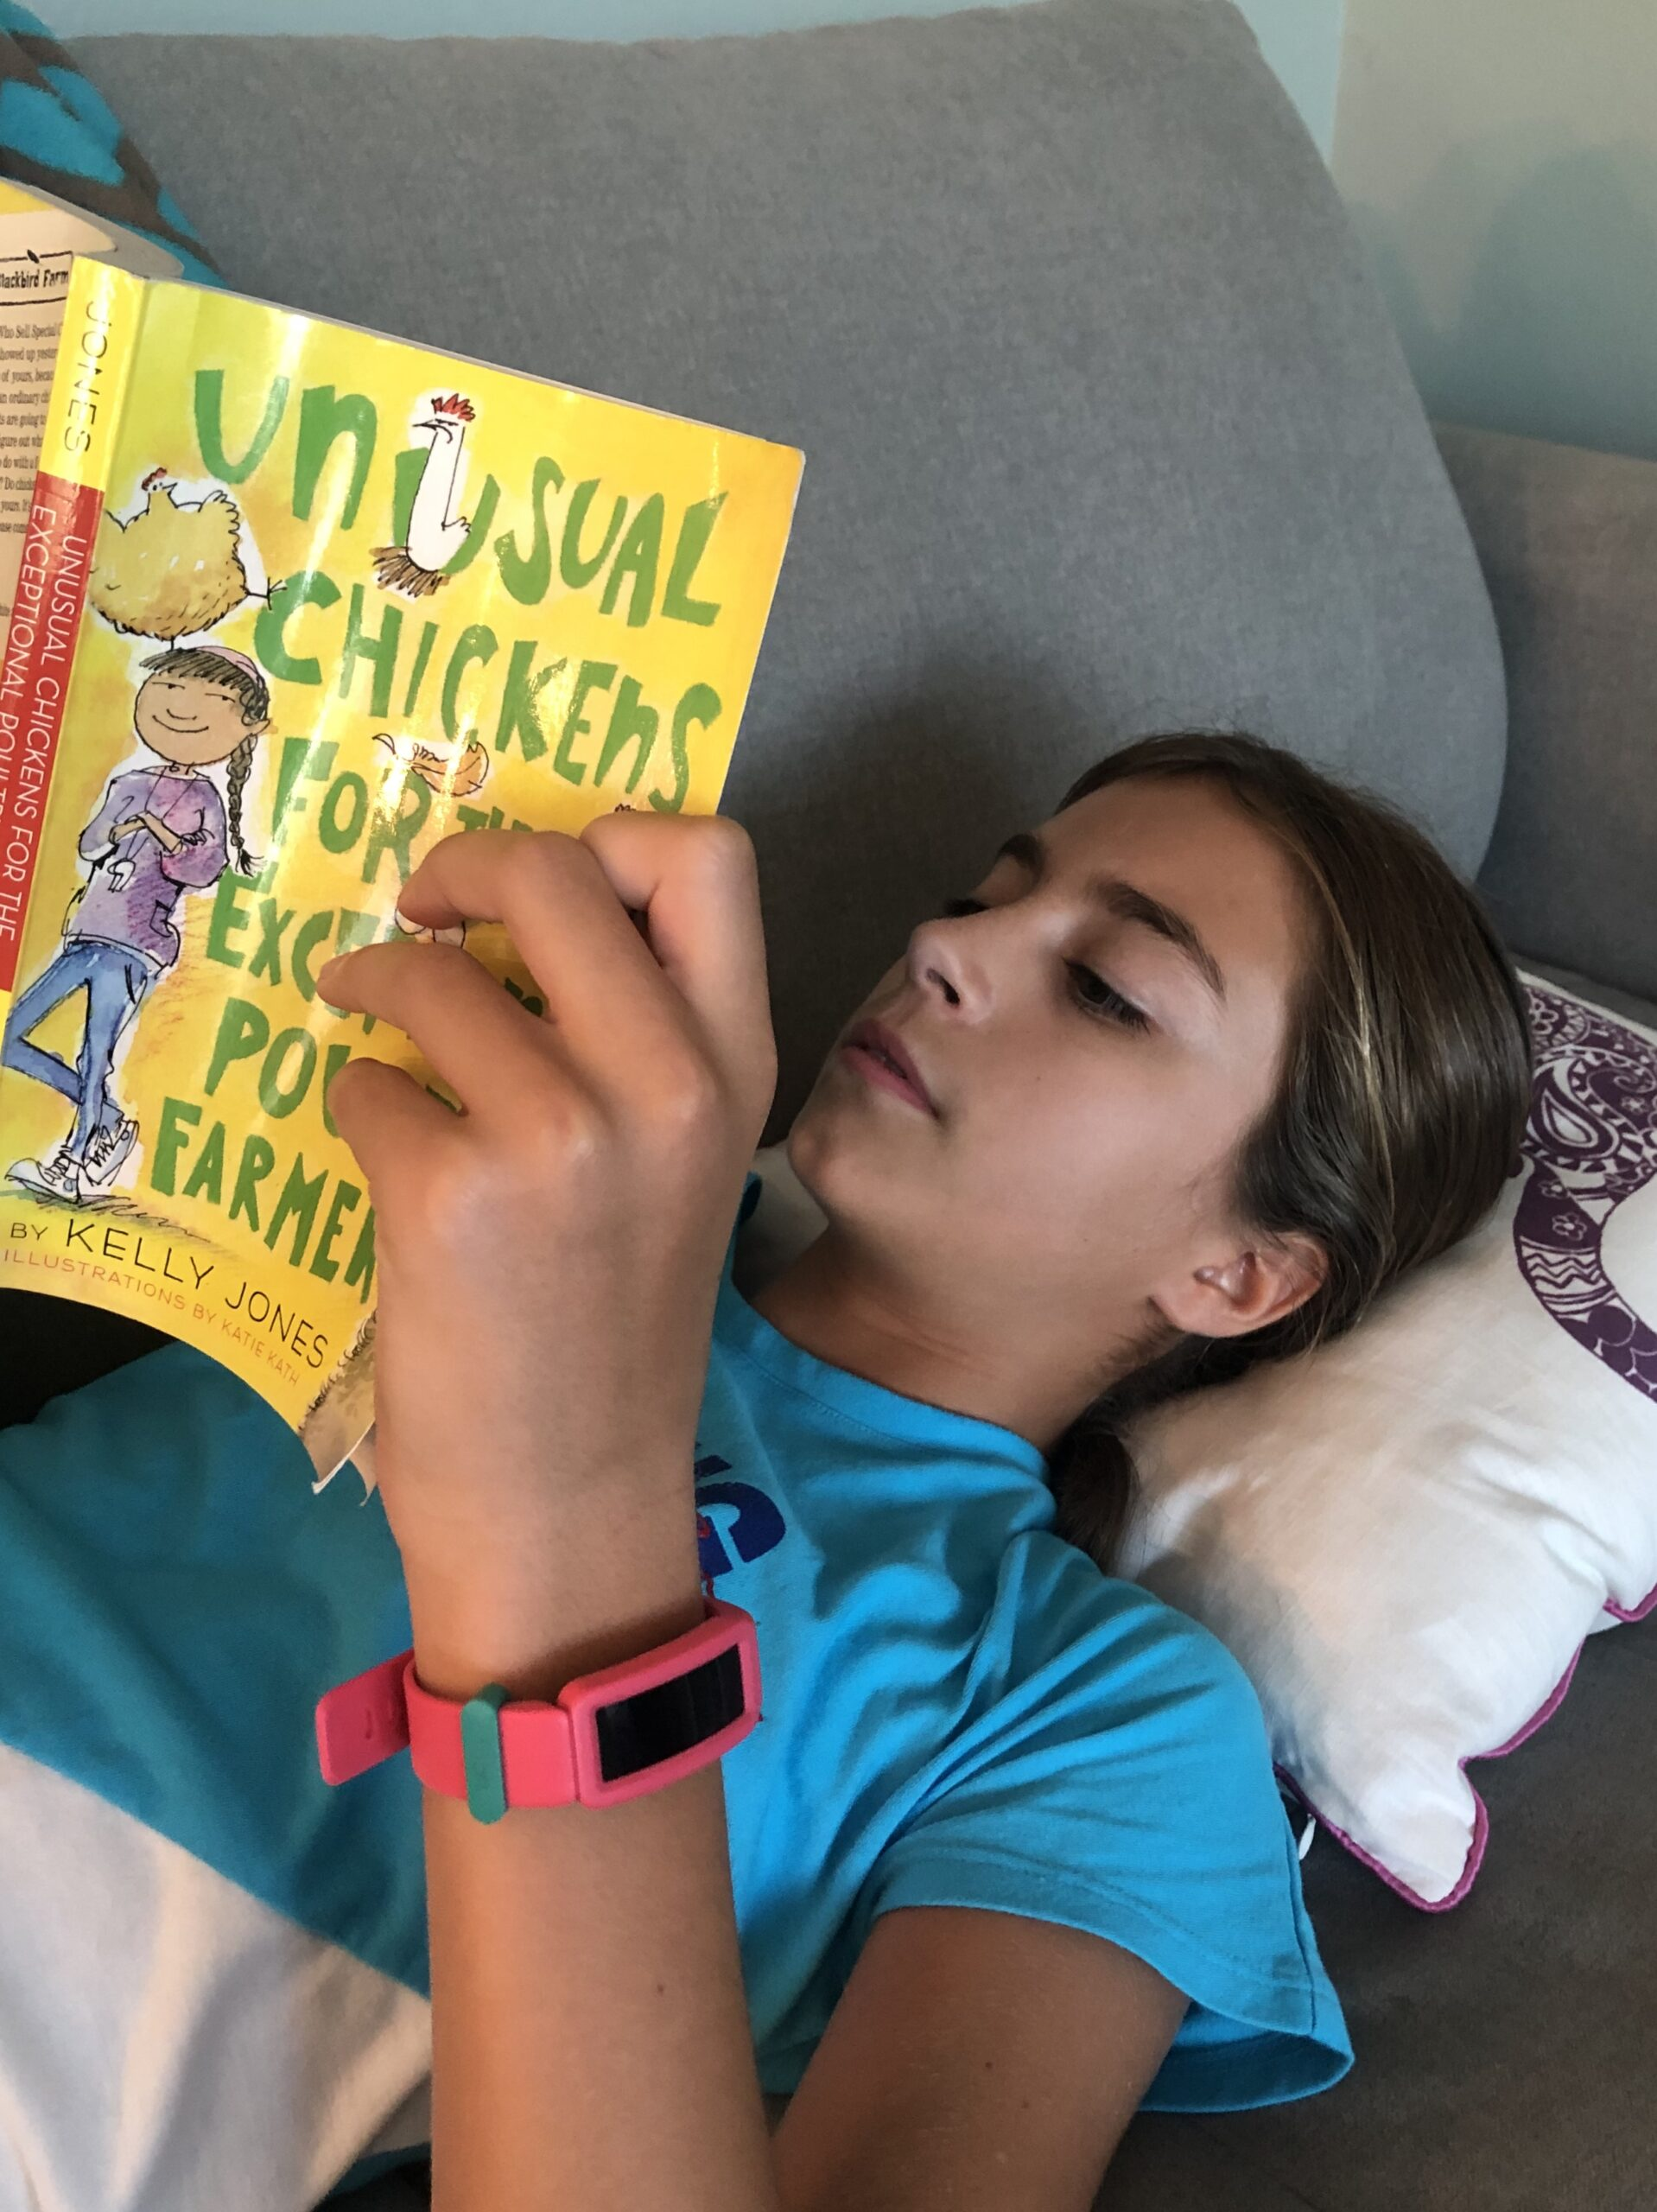 Girl laying down and reading Unusual Chickens for the Exceptional Poultry Farmer for the book review.